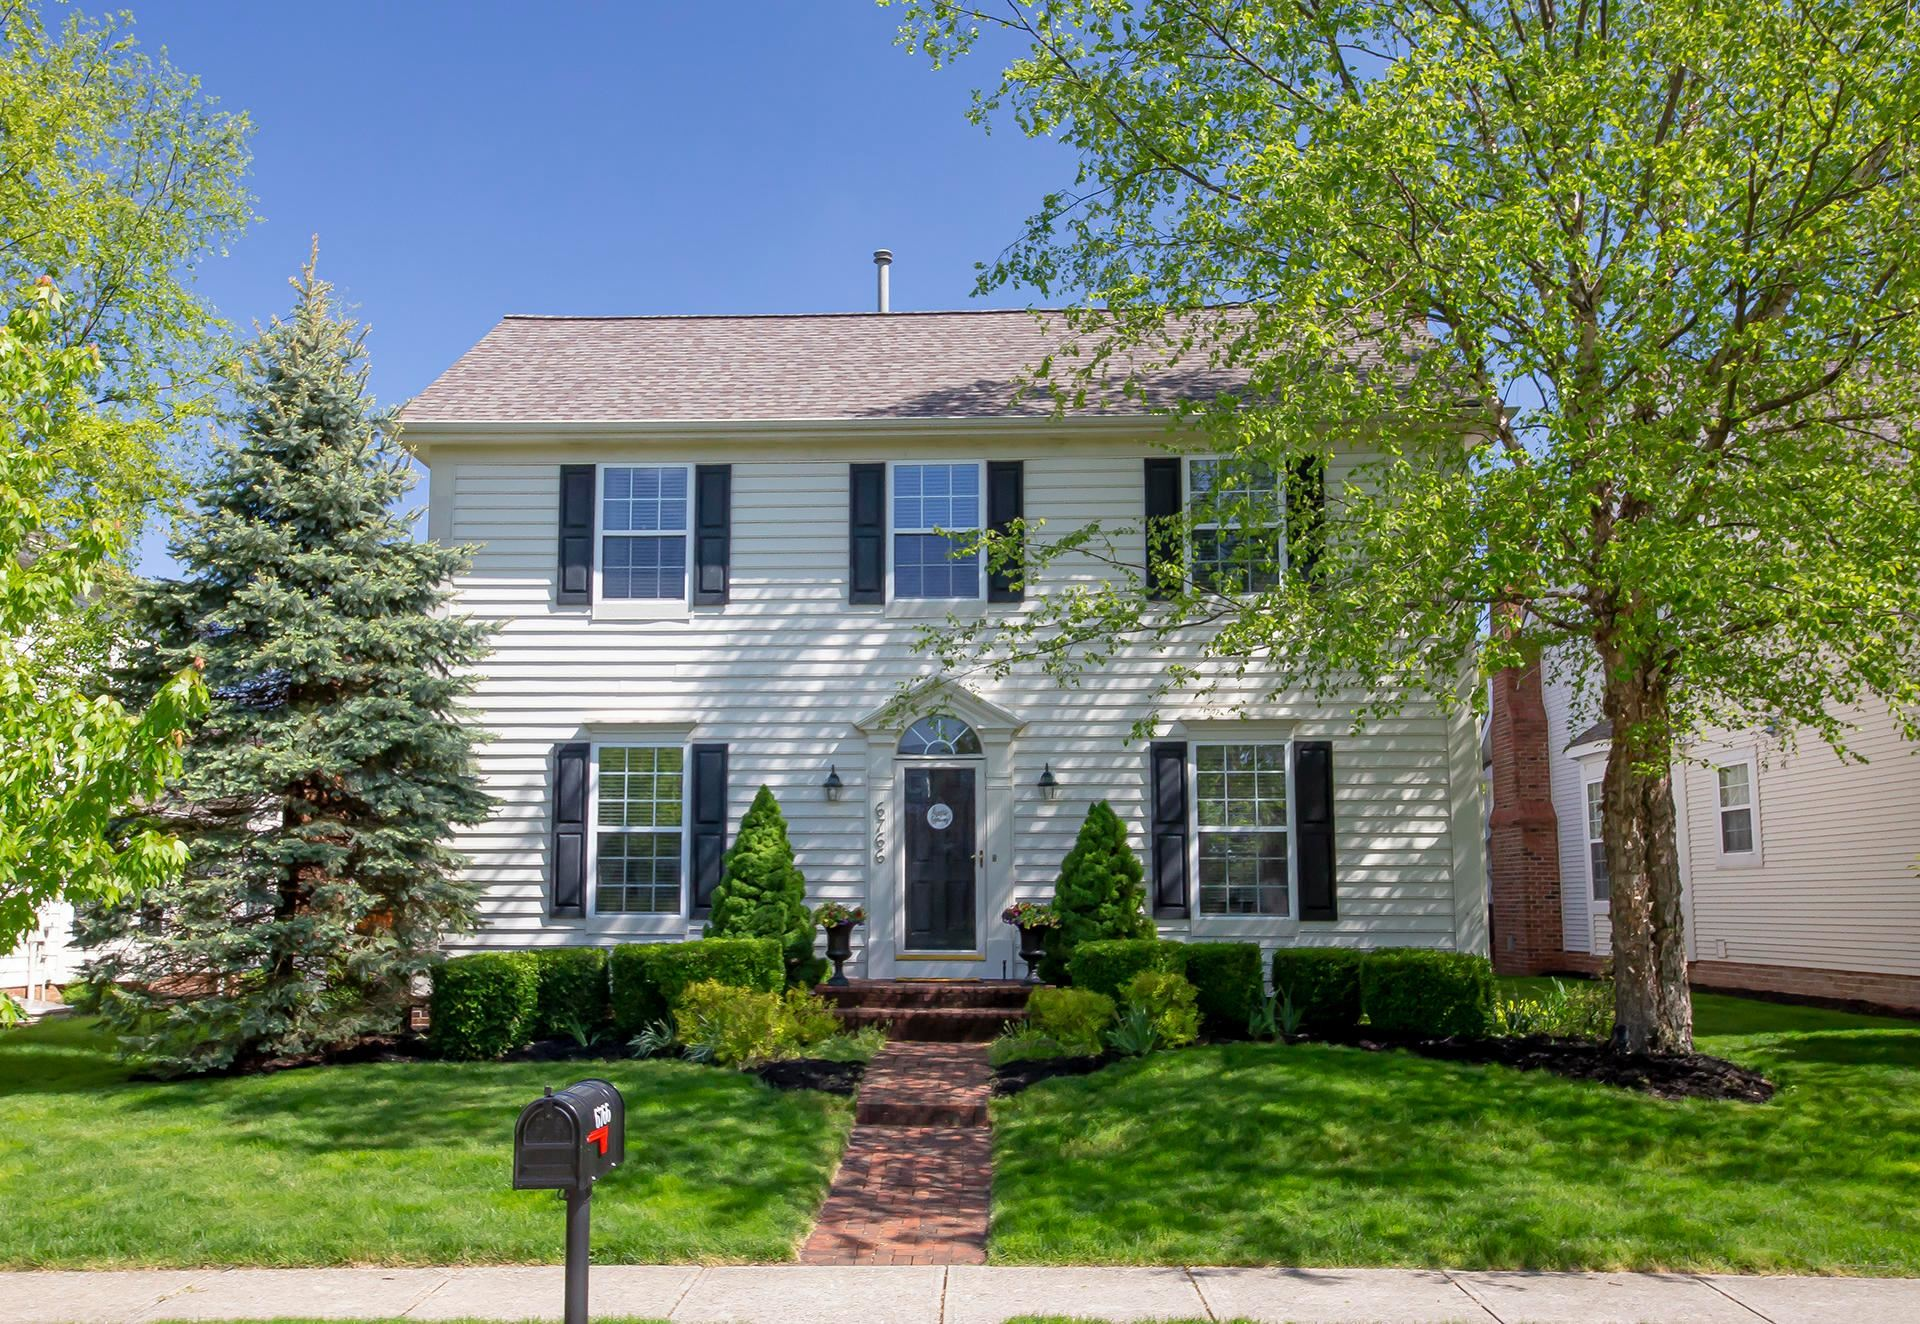 Photo of 6766 Upper Brook Way, New Albany, OH 43054 (MLS # 221015444)